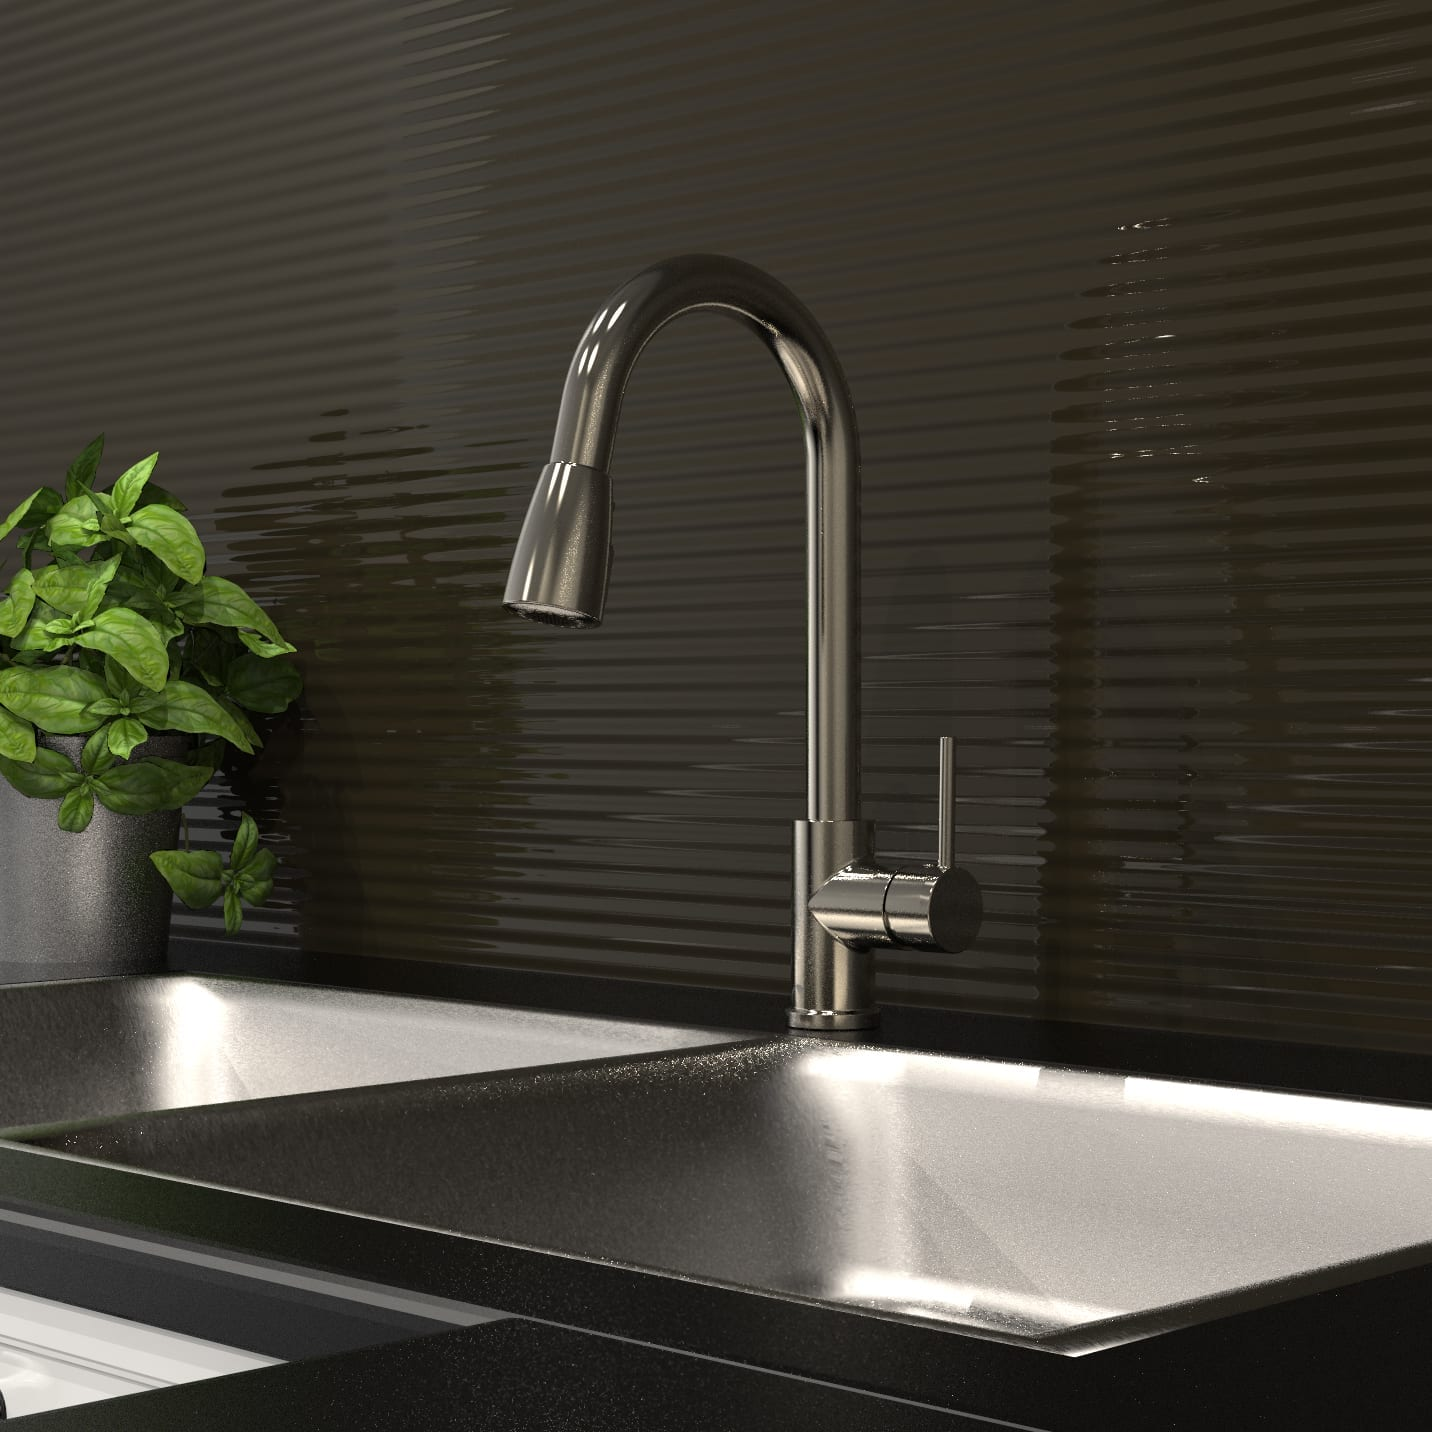 Kitchen Sink Faucet with Swivel Pull-Down Spout // Pause Button ...